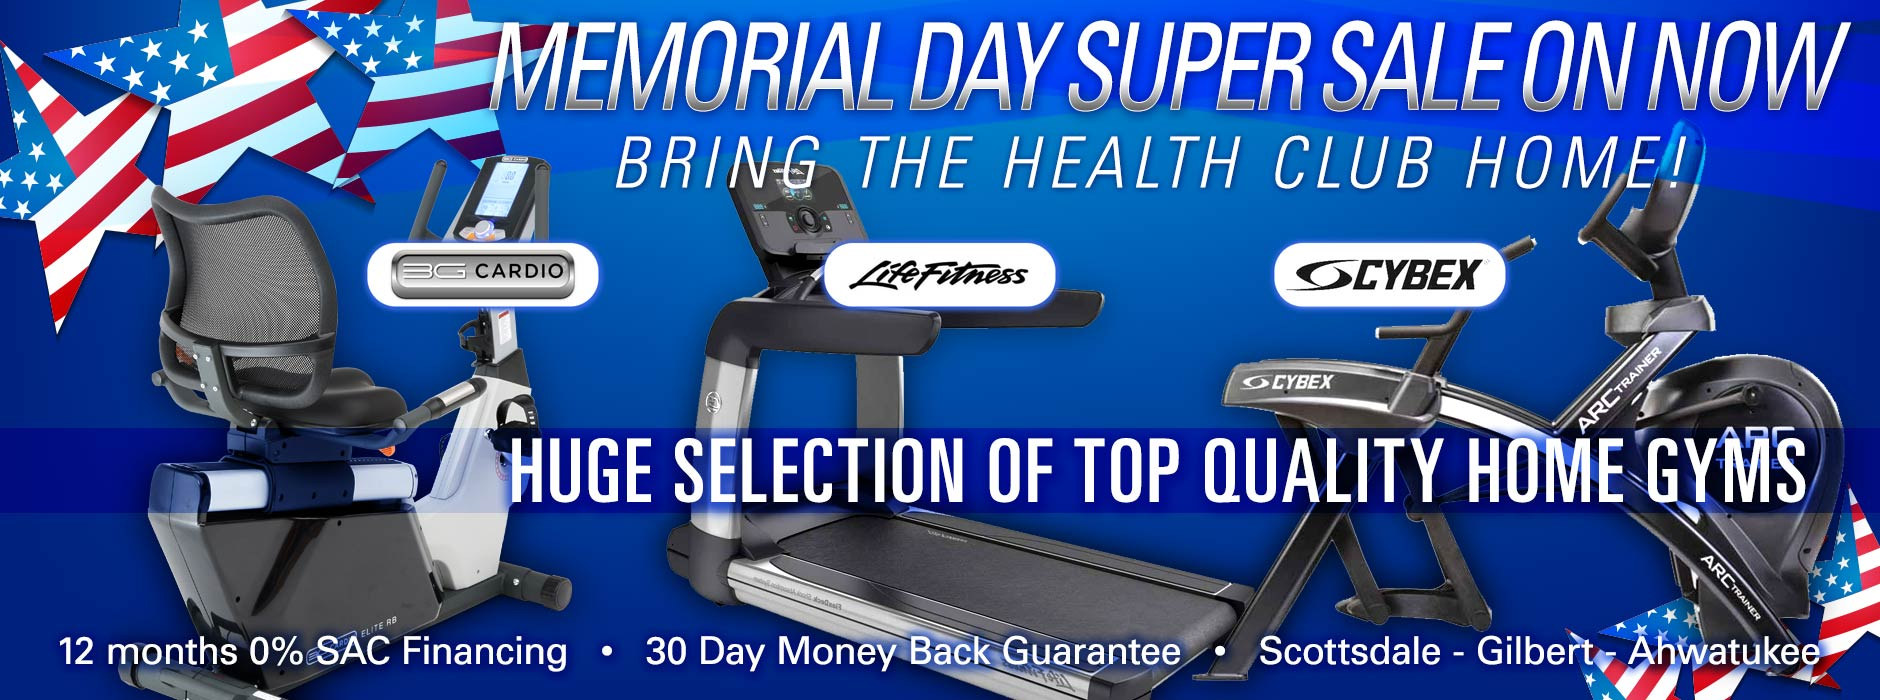 Memorial Day Super Sale on Arizona At Home Fitness